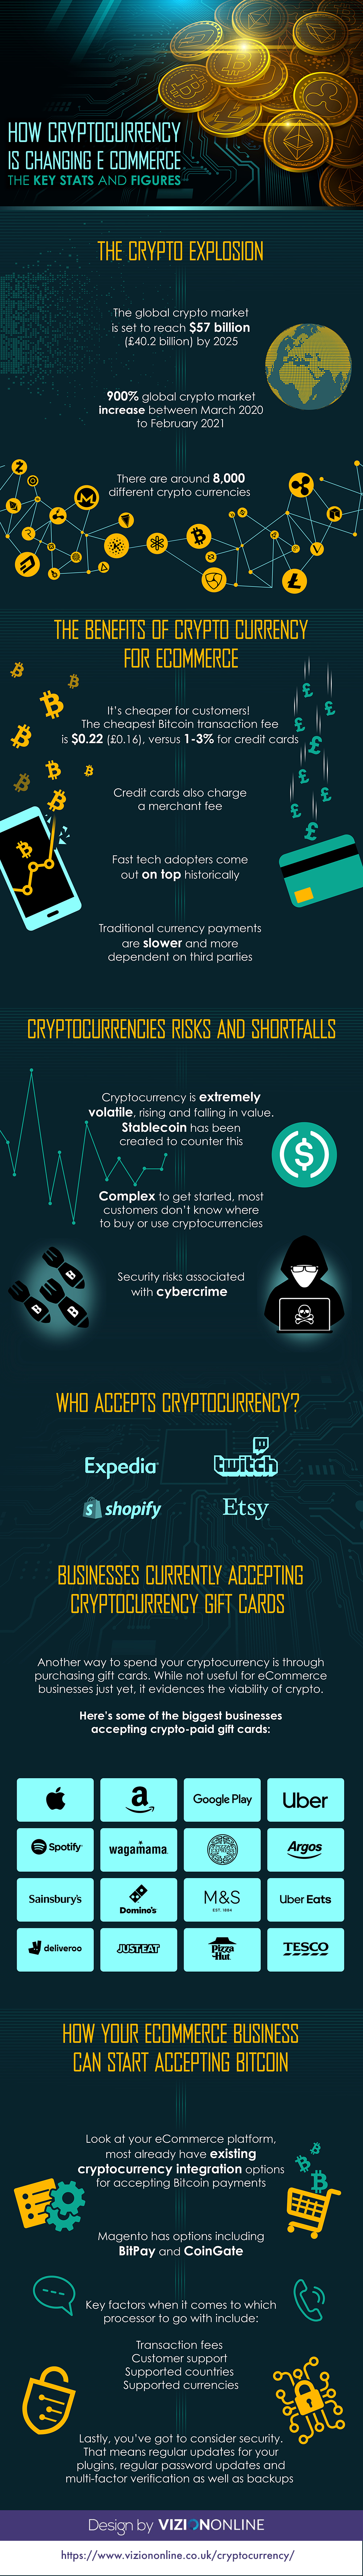 How Cryptocurrency Is Changing eCommerce (Infographic)